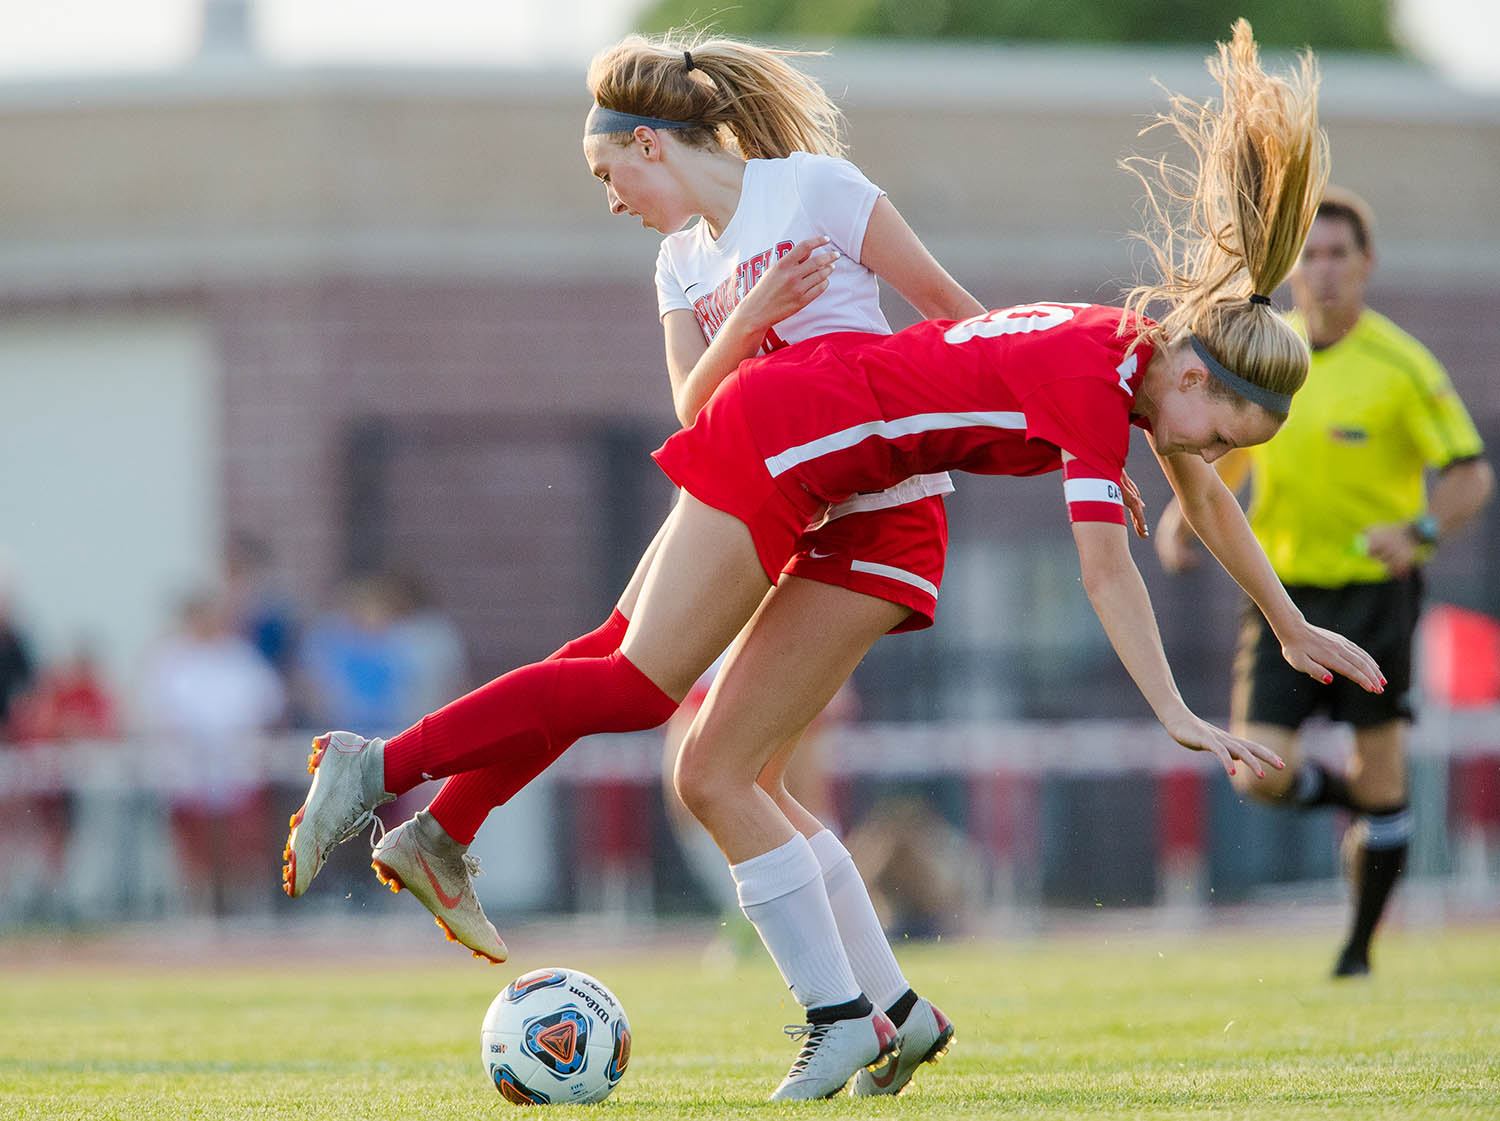 Troy Triad's Sydney Beach flies past Springfield's Cadence Brenham during the 2A Glenwood Supersectional at Glenwood High School Tuesday, May 28, 2019. [Ted Schurter/The State Journal-Register]